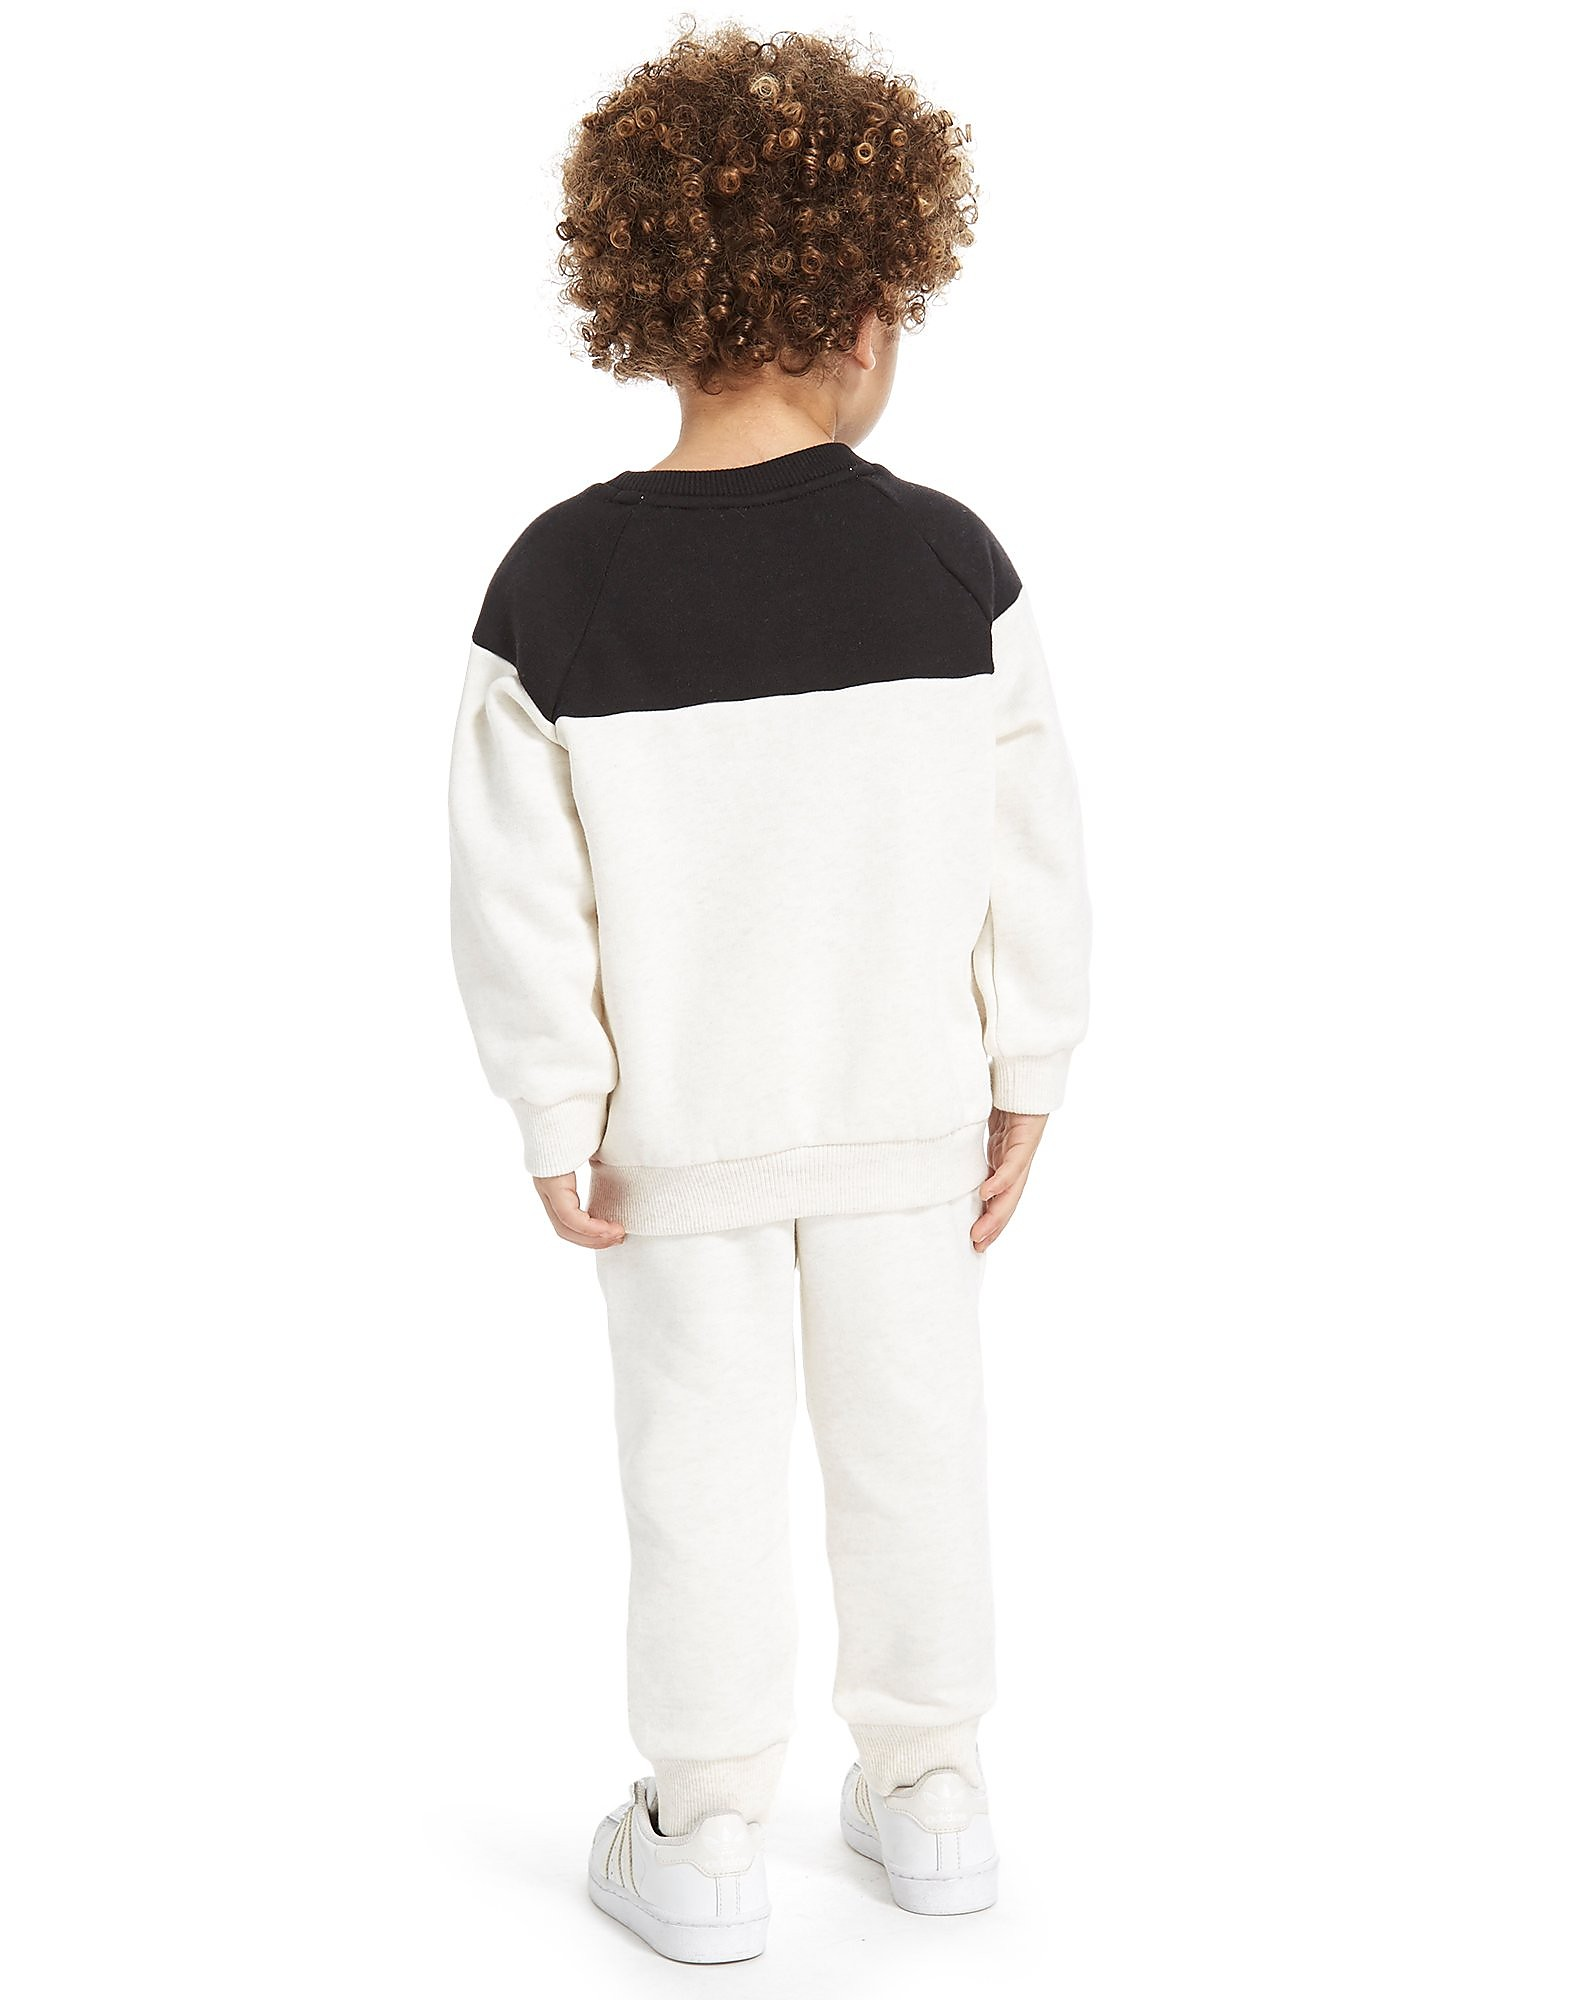 adidas Originals Trefoil Crew Suit Infant